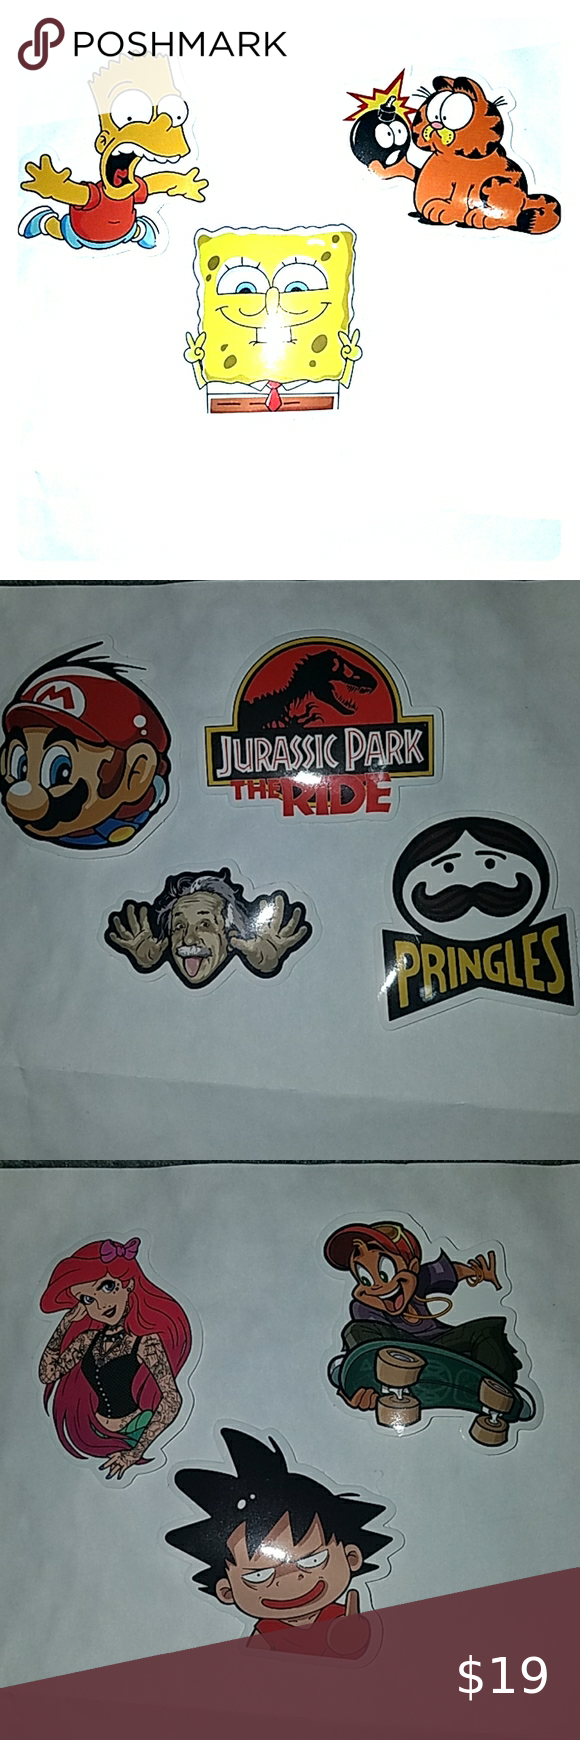 Stickers 2 for $1 Random stickers 2 for $1. Comment which one you want and I'll make a separate listing for you to buy.   #ariel #lakers #stickers #spongebob #luffy #jurassicpark #garfield #simpsons #mario #einstein #pringles Other